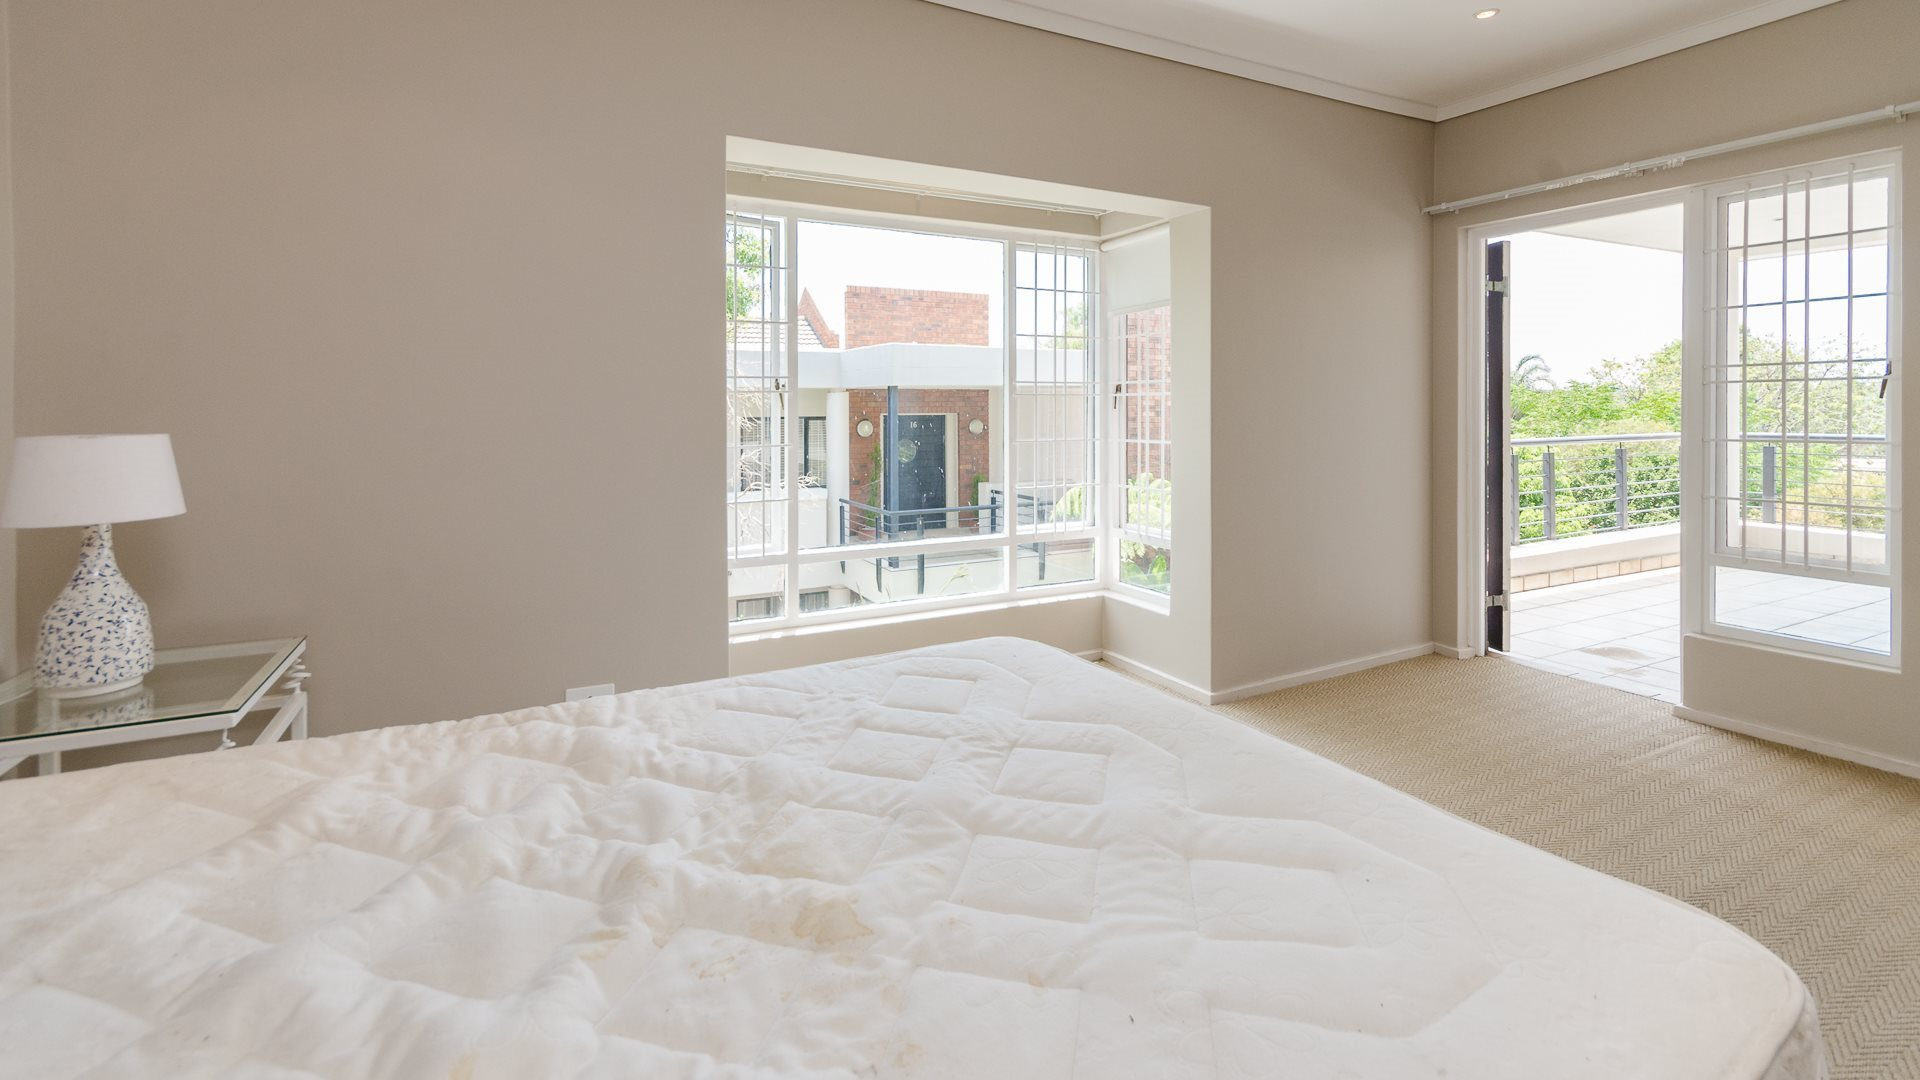 Morningside property for sale. Ref No: 13561793. Picture no 8